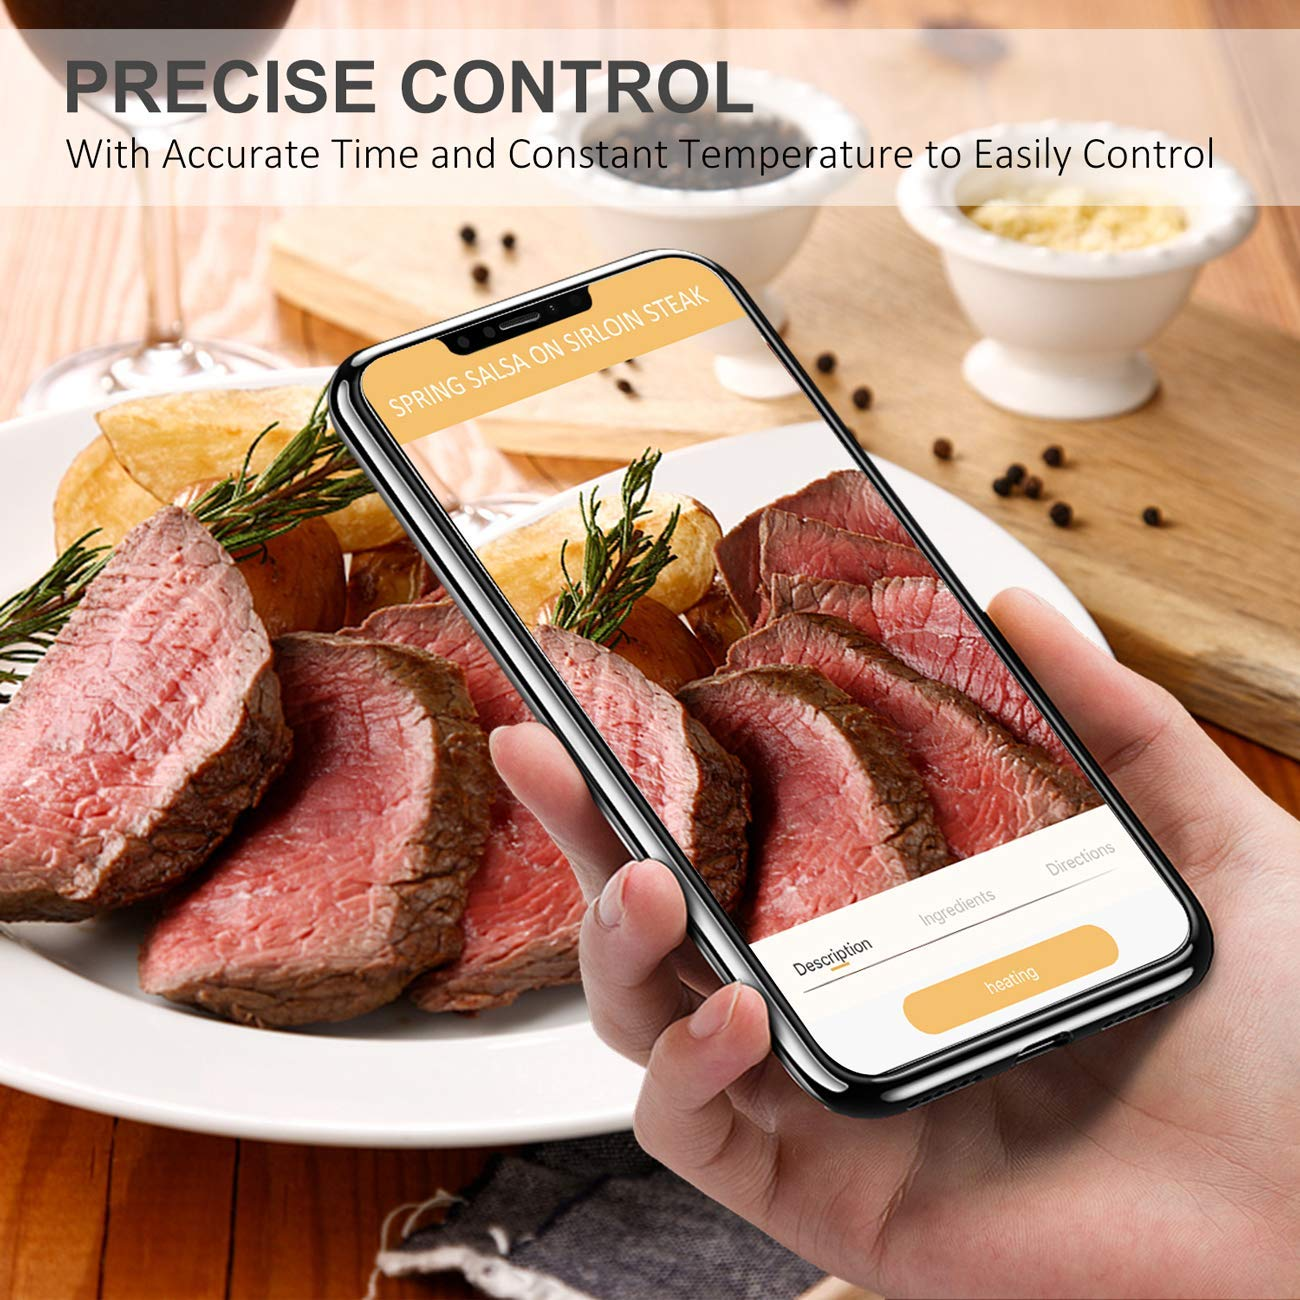 Anmade WiFi Sous Vide 1000W Precision Cooker Immersion Circulator Digital LED Screen IPX7 With Accurate Temperature Timer Control and Recipe For Kitchen